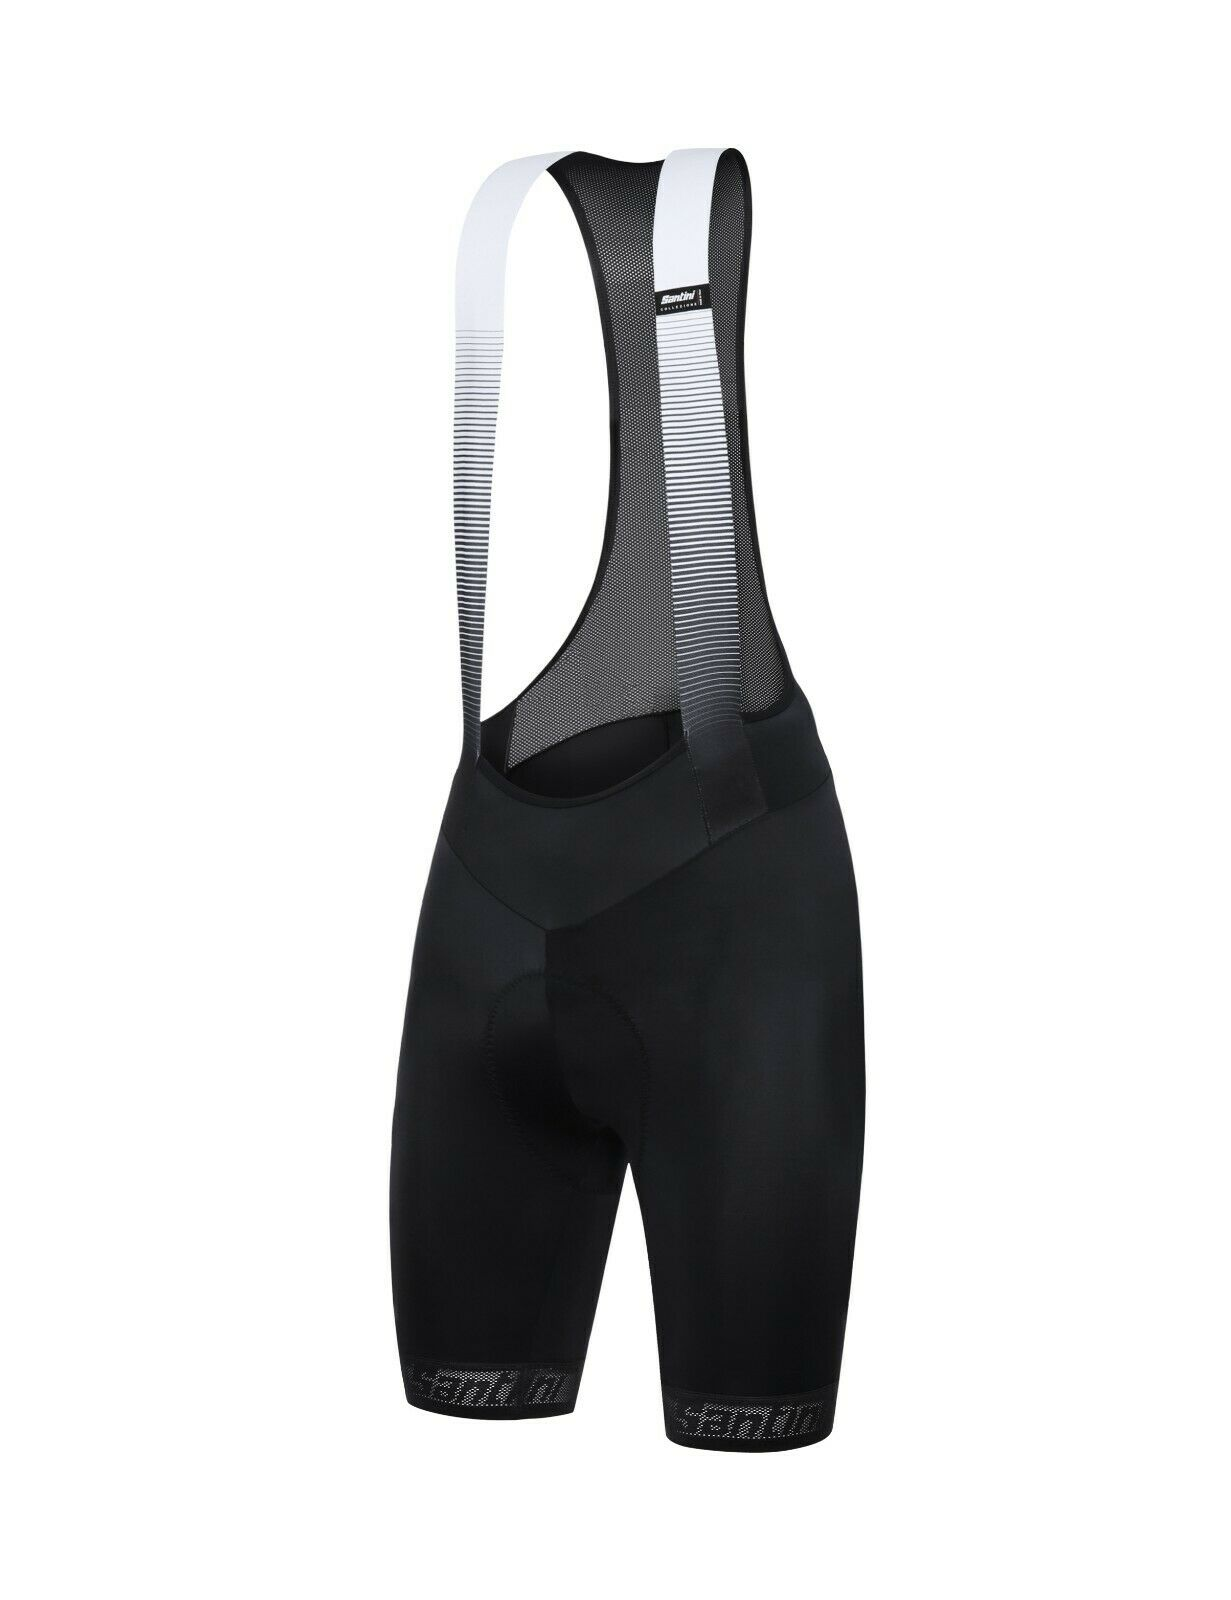 2018-19 Men's Fase Bib Cycling Shorts by Santini - Made  in   wholesale cheap and high quality